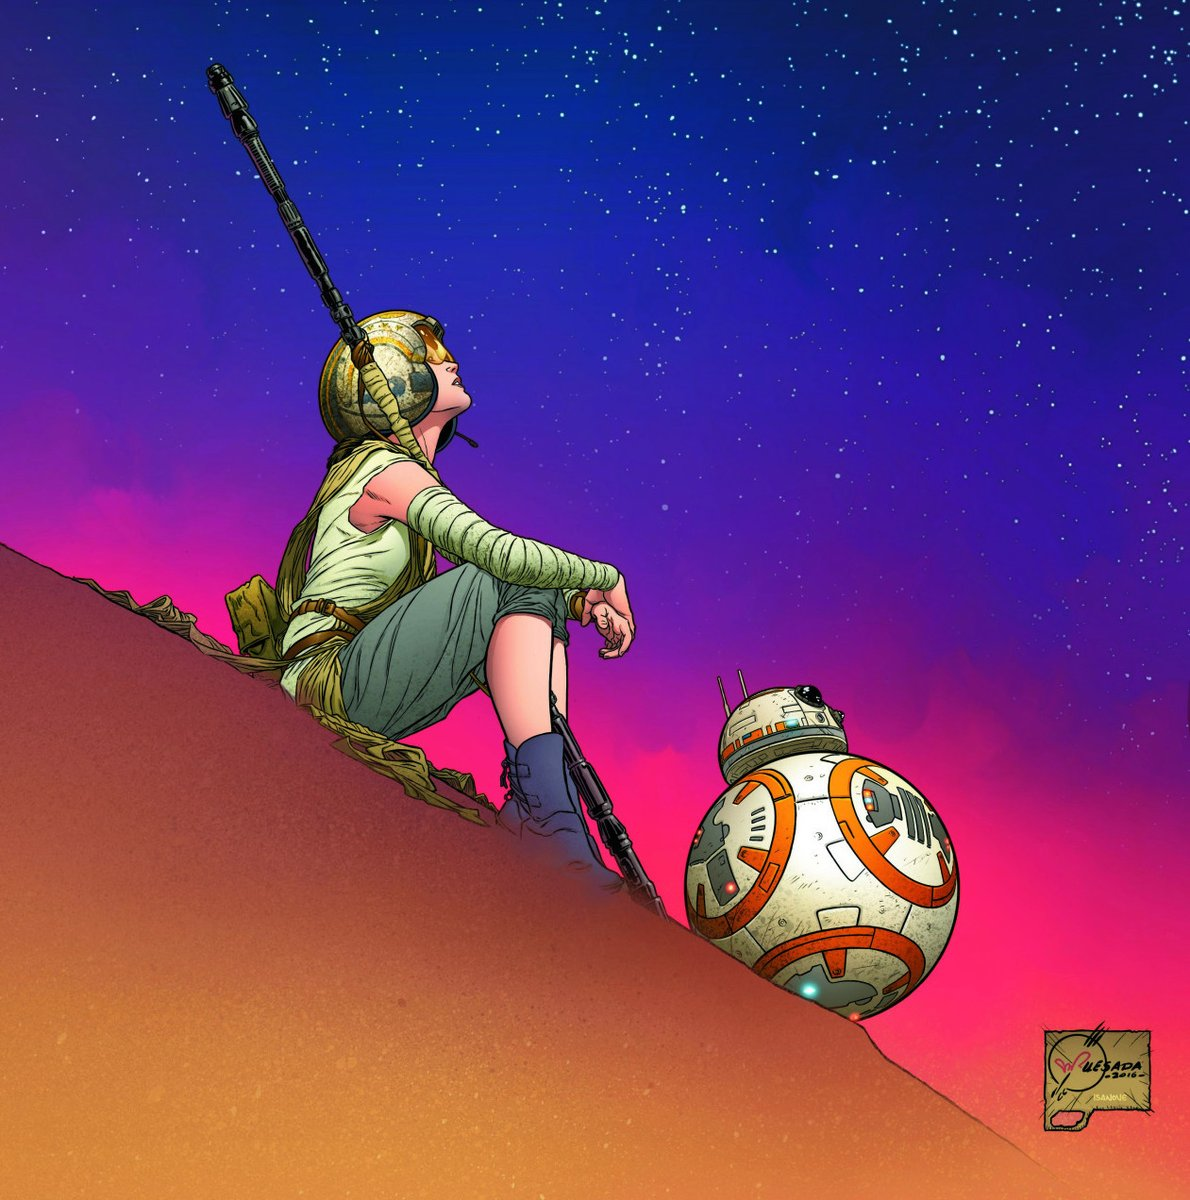 To hope and a brighter future. #MayThe4thBeWithYou (🖼 by @JoeQuesada)